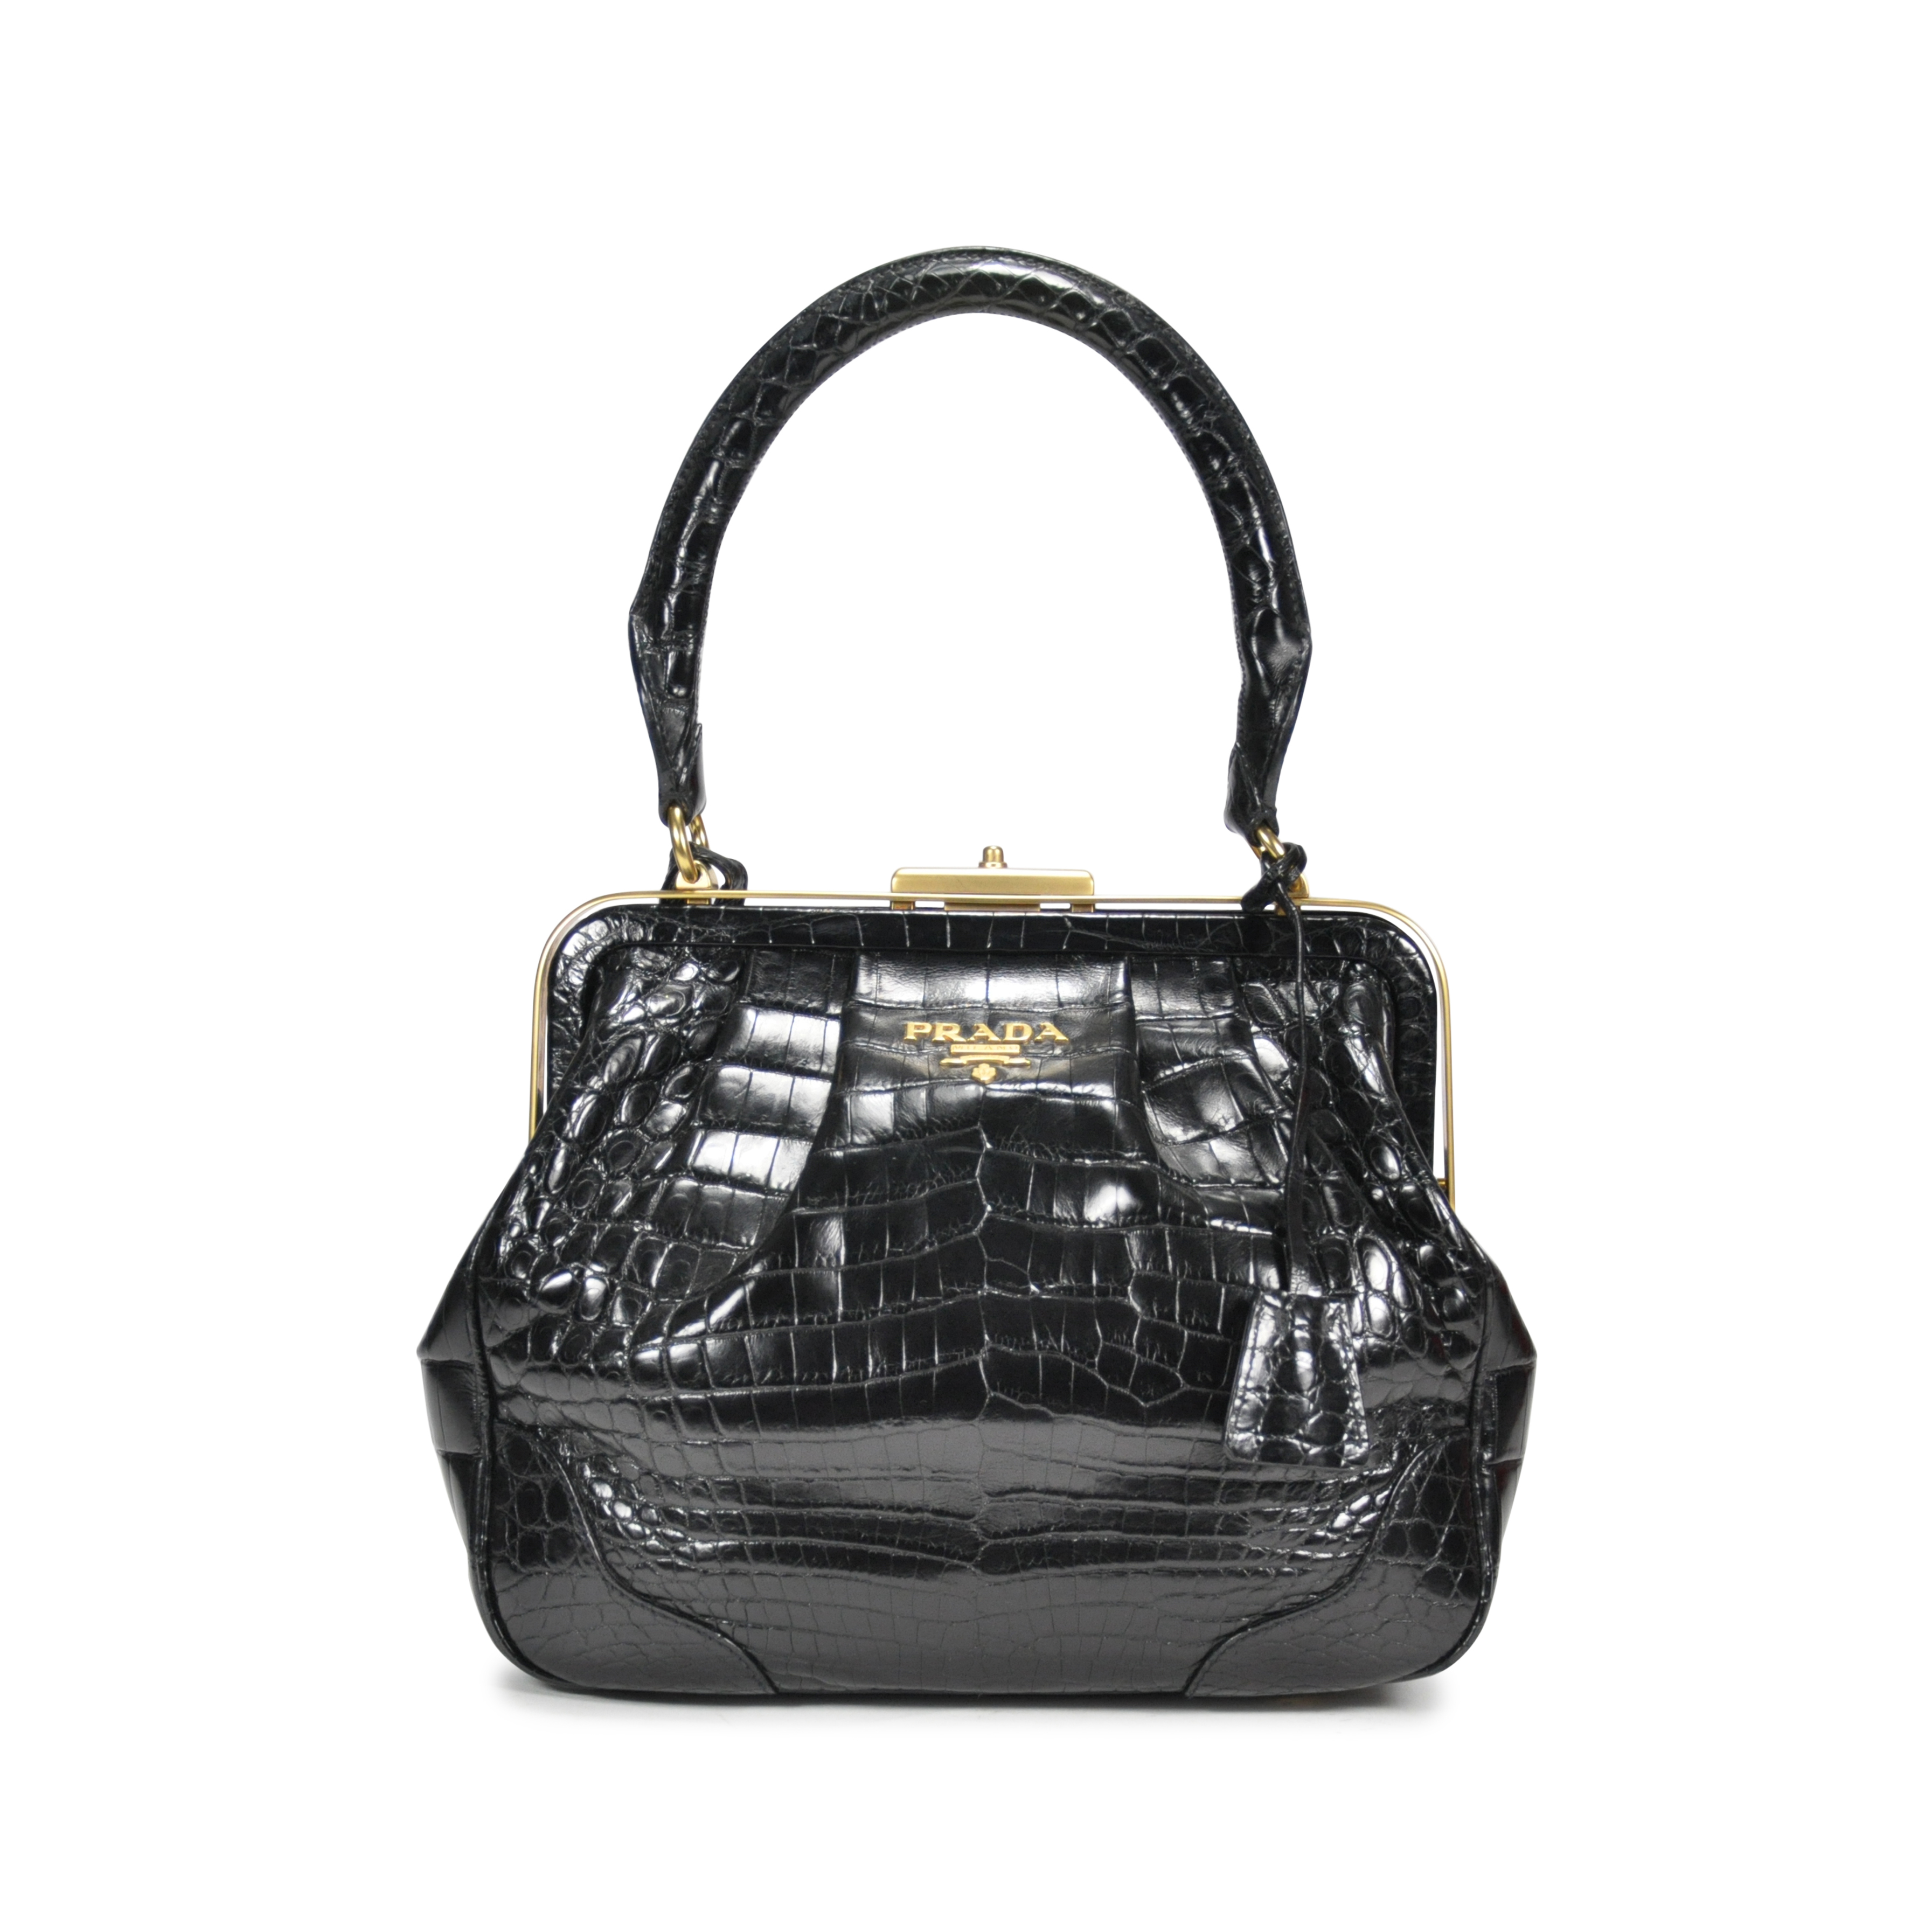 9abf2c22d9 ... shop second hand prada crocodile top handle frame bag the fifth  collection 88039 36666 ...